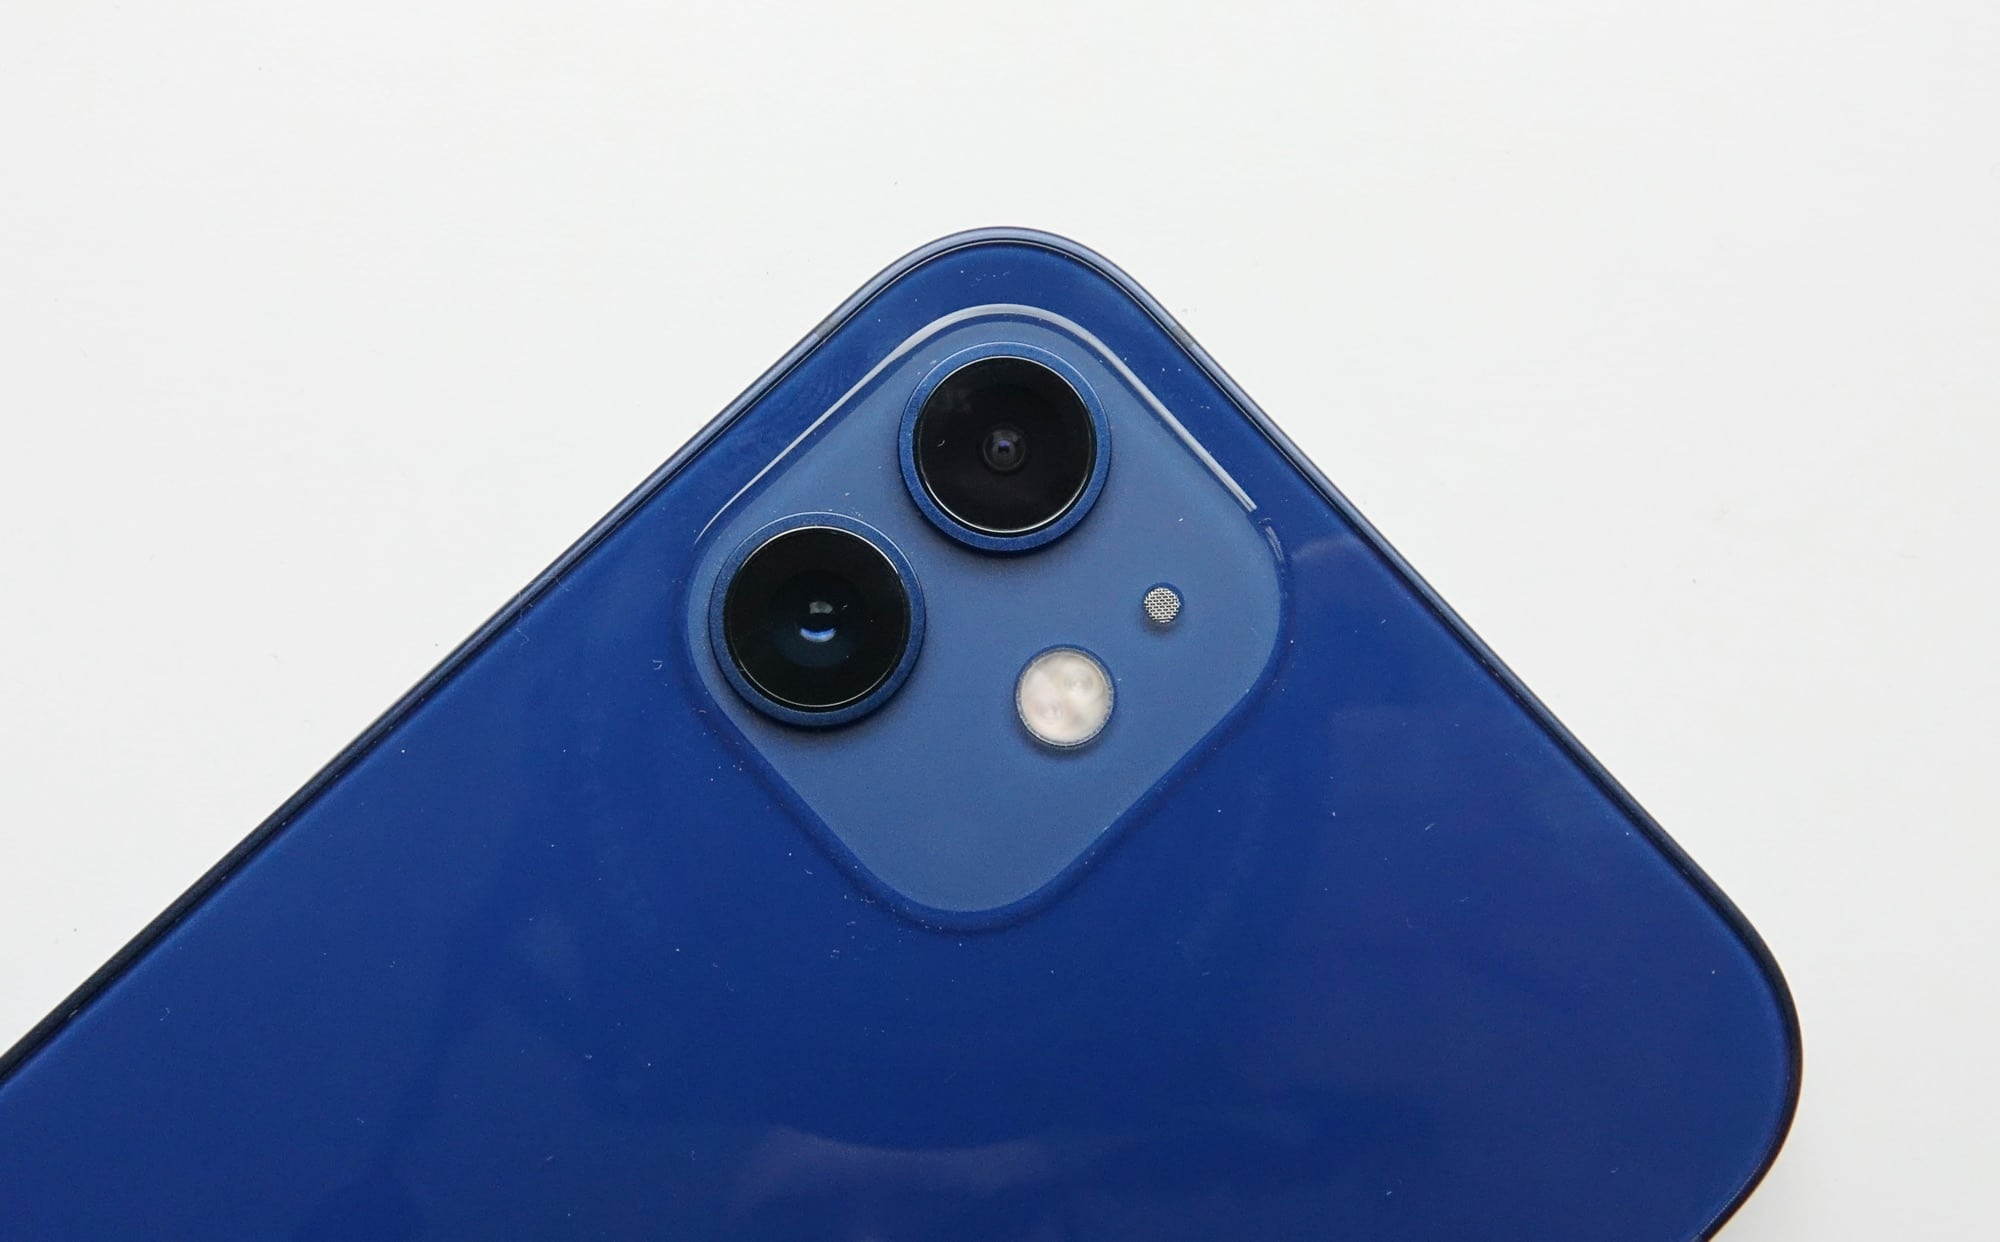 The cameras on the iPhone 12